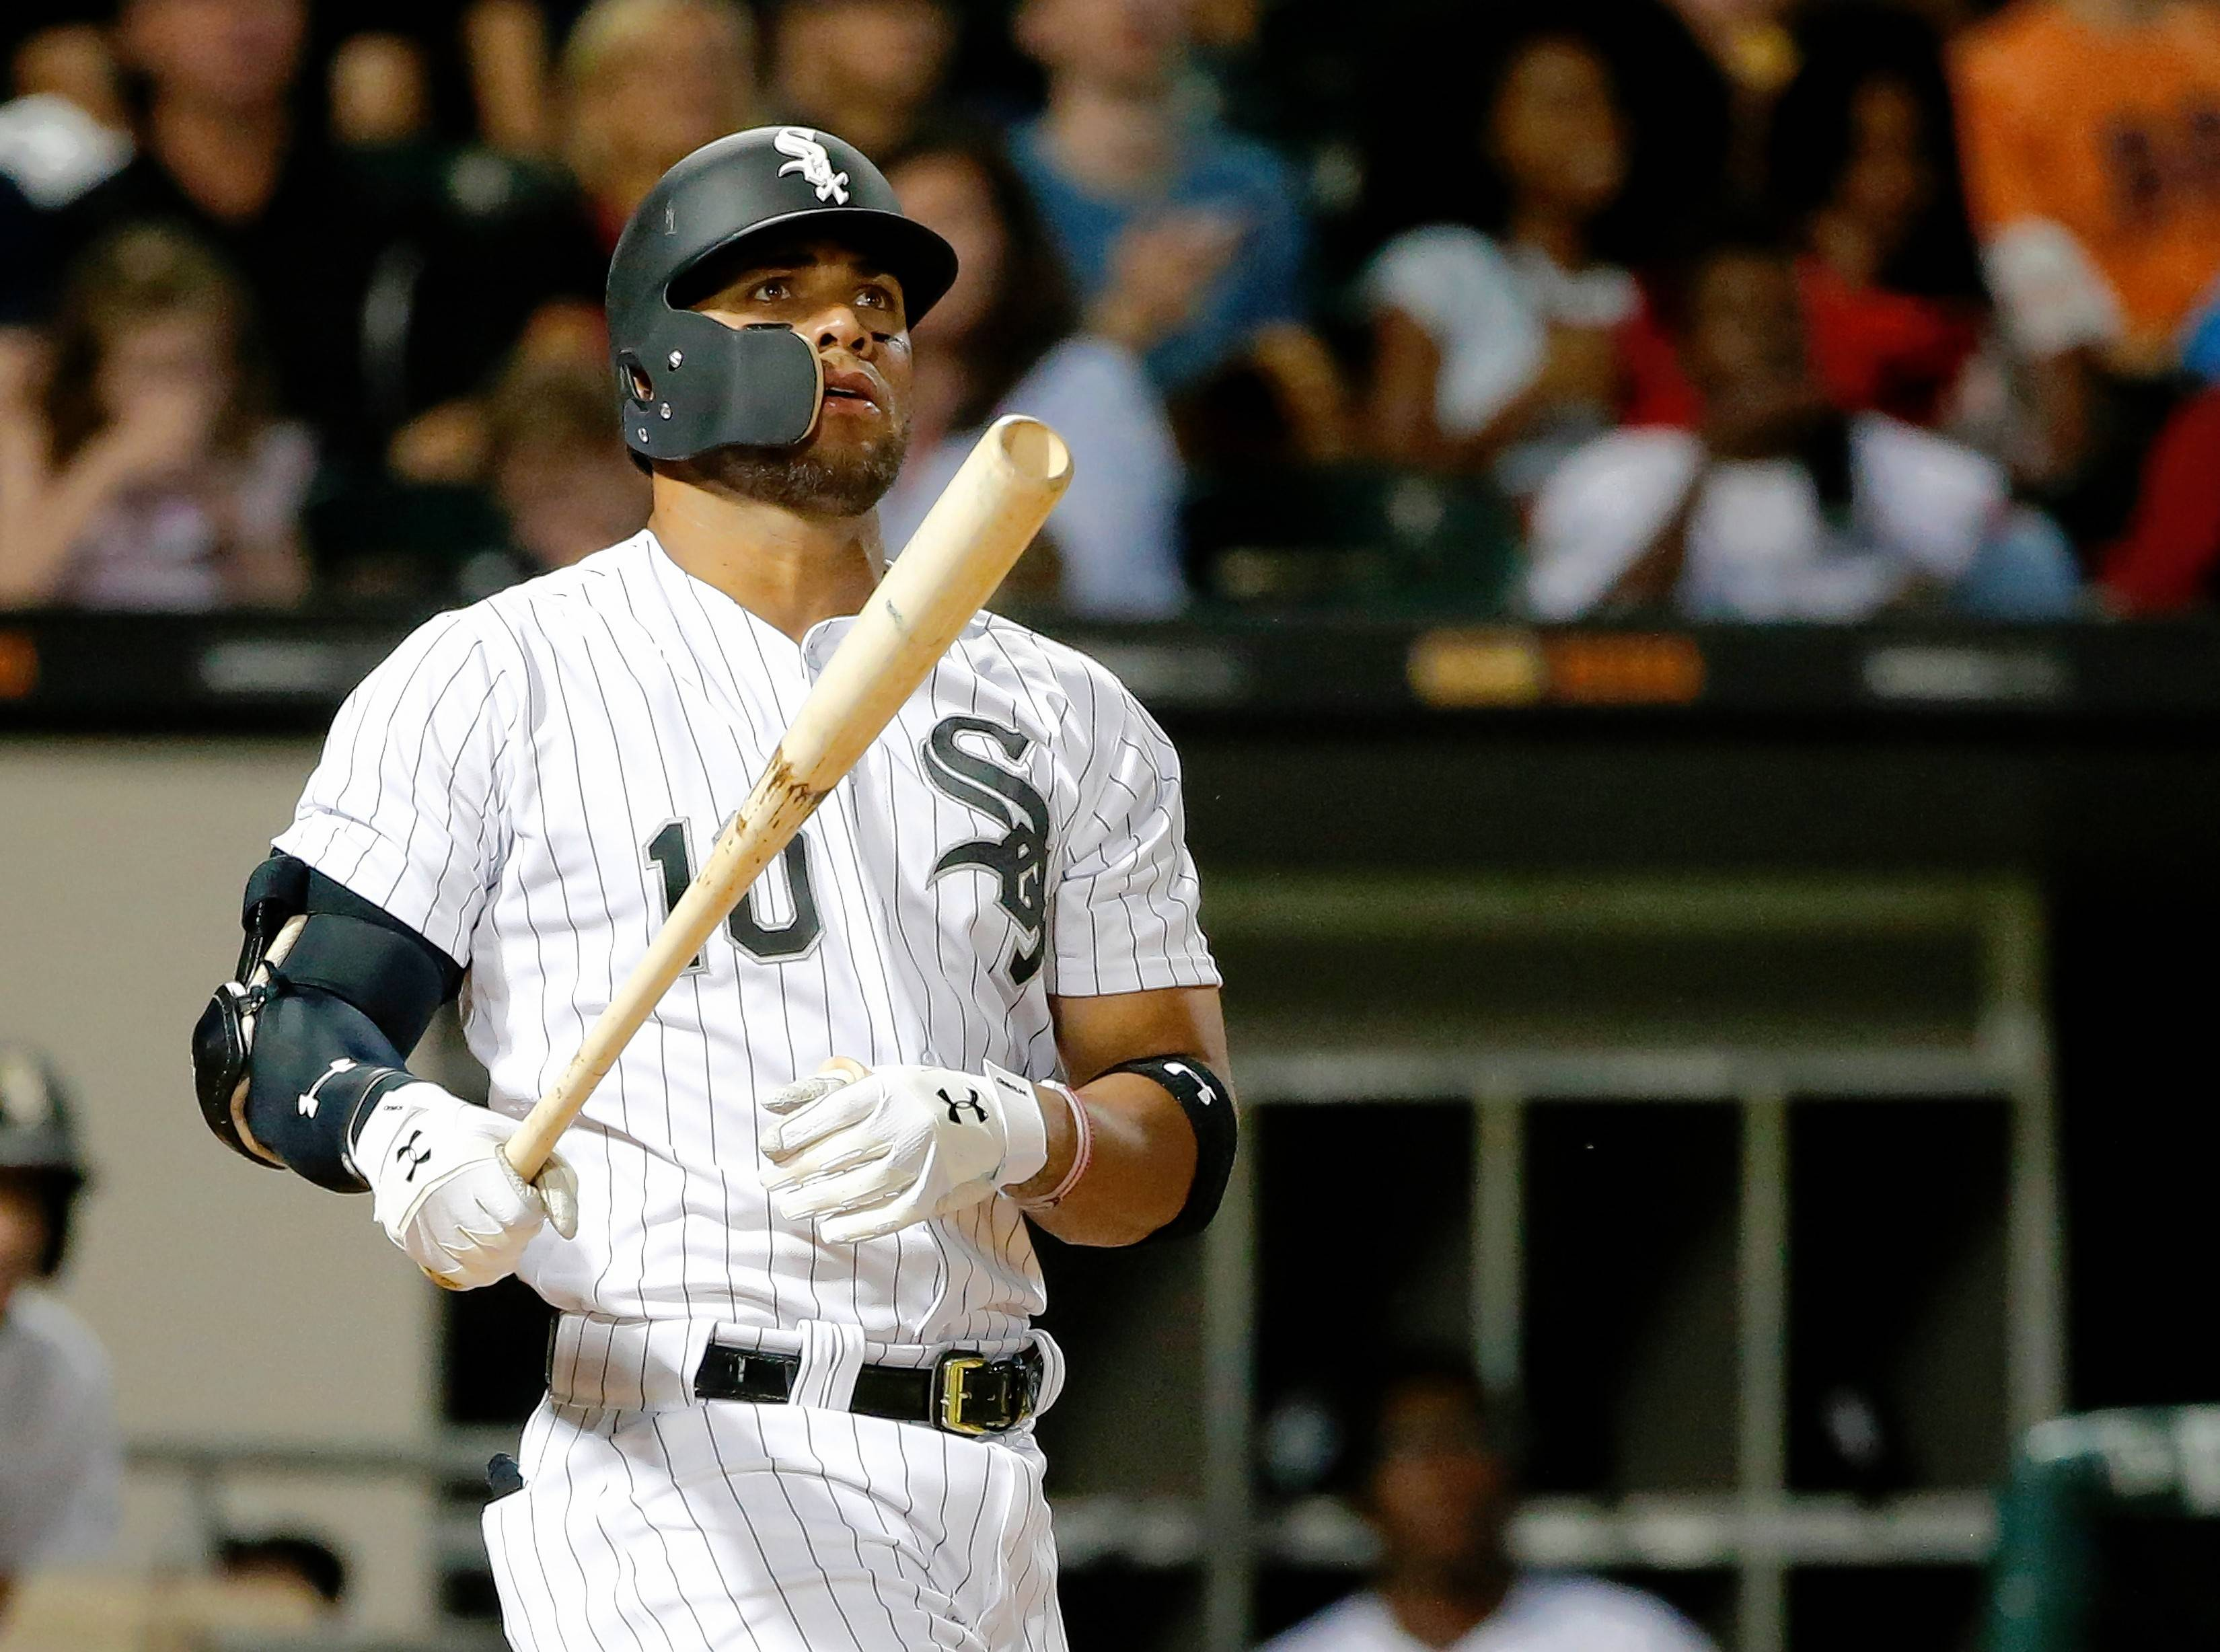 Chicago White Sox's Yoan Moncada watches his deep fly ball hook foul during the fourth inning of a baseball game against the Houston Astros Wednesday, Aug. 9, 2017, in Chicago. (AP Photo/Charles Rex Arbogast)